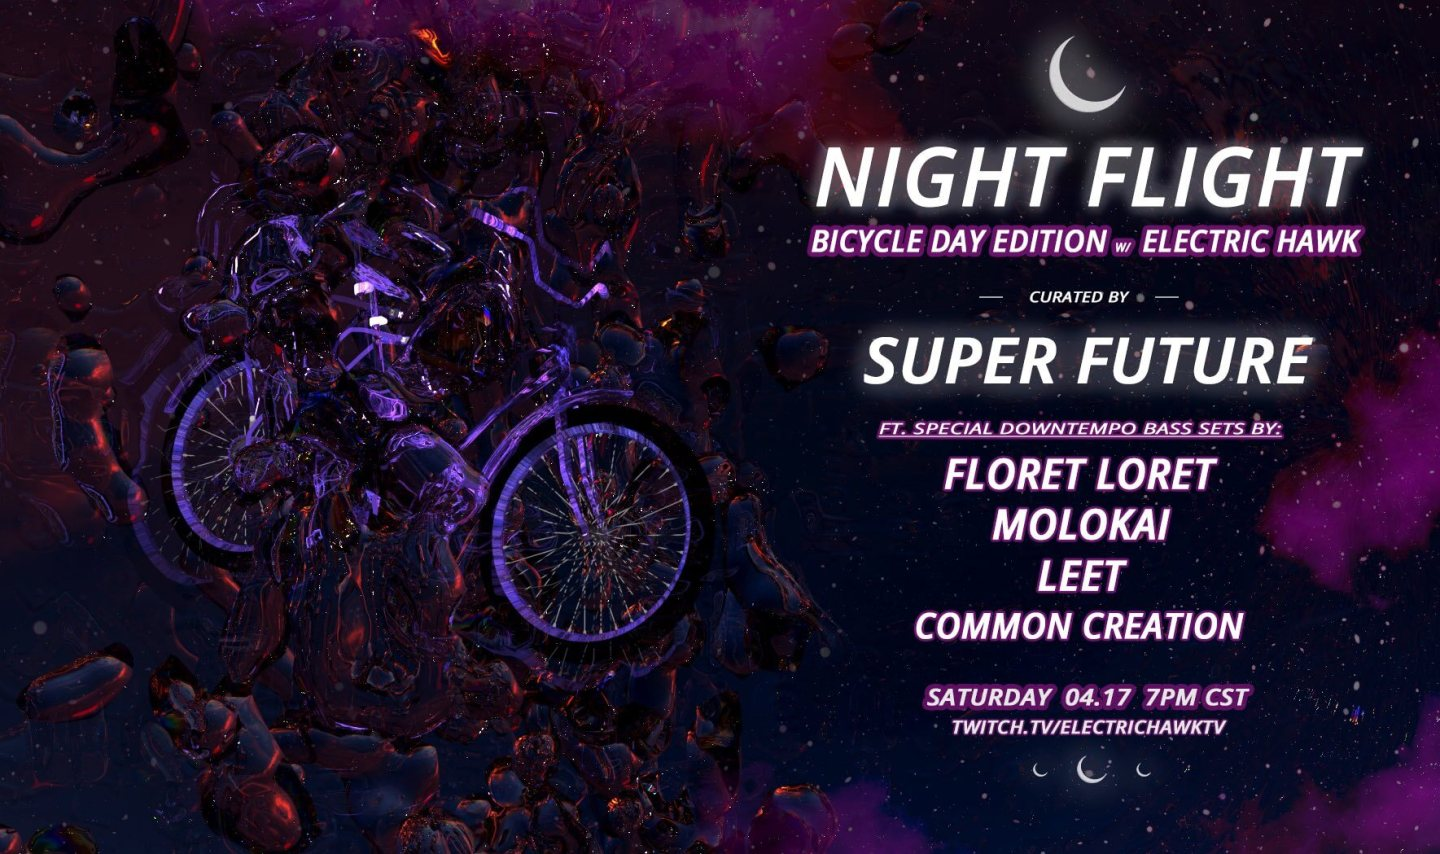 Super Future Bicycle Day